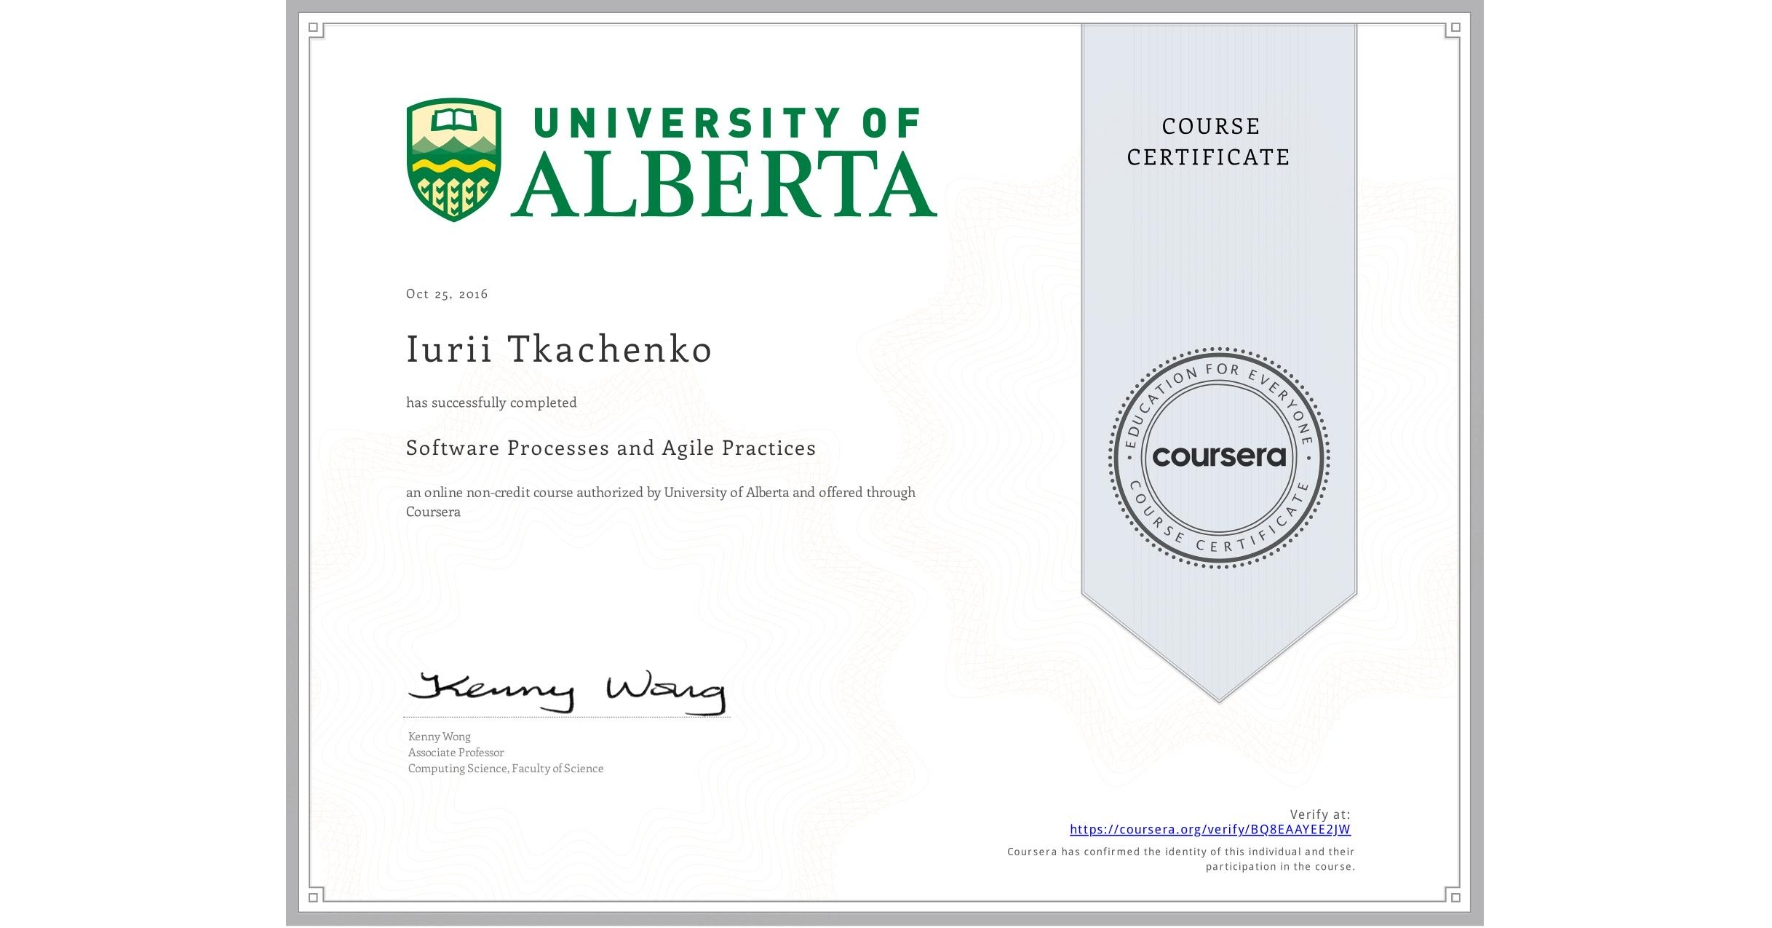 View certificate for Iurii Tkachenko, Software Processes and Agile Practices, an online non-credit course authorized by University of Alberta and offered through Coursera